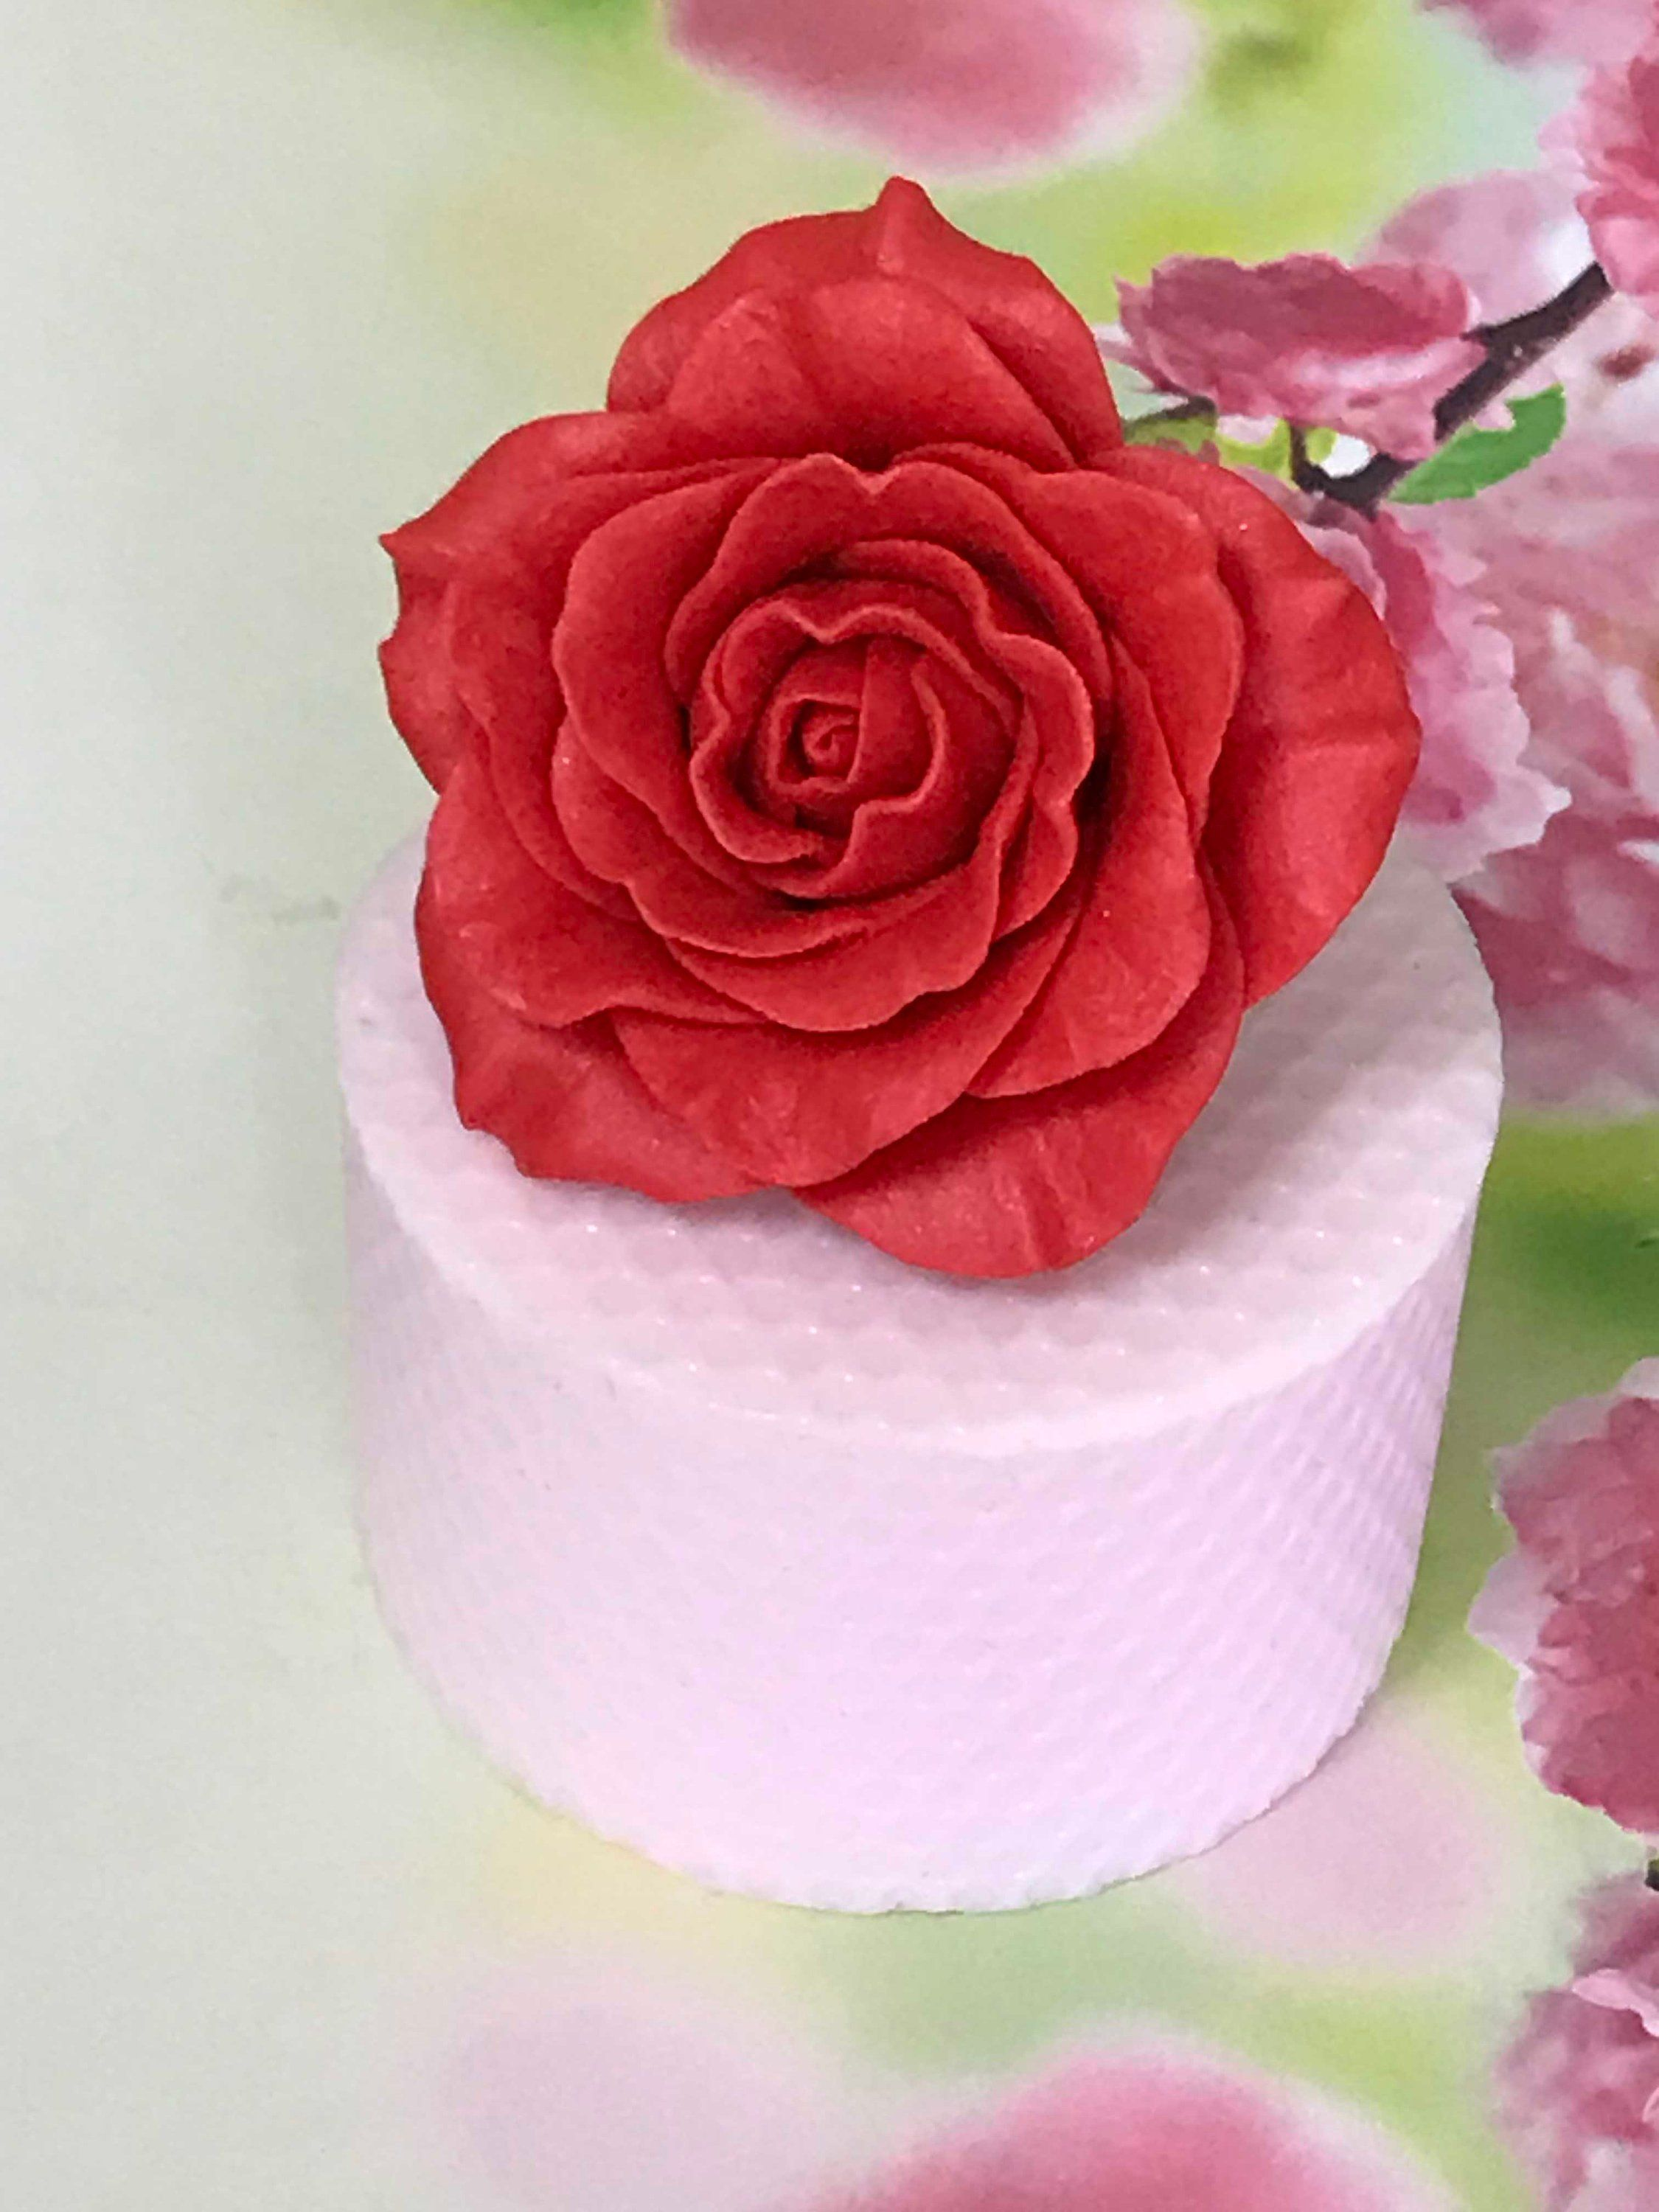 Rose Mold Flower Silicone Mold Flower Soap Mold Melt And Pour Etsy Silicone Candle Molds Rose Molds Flower Soap